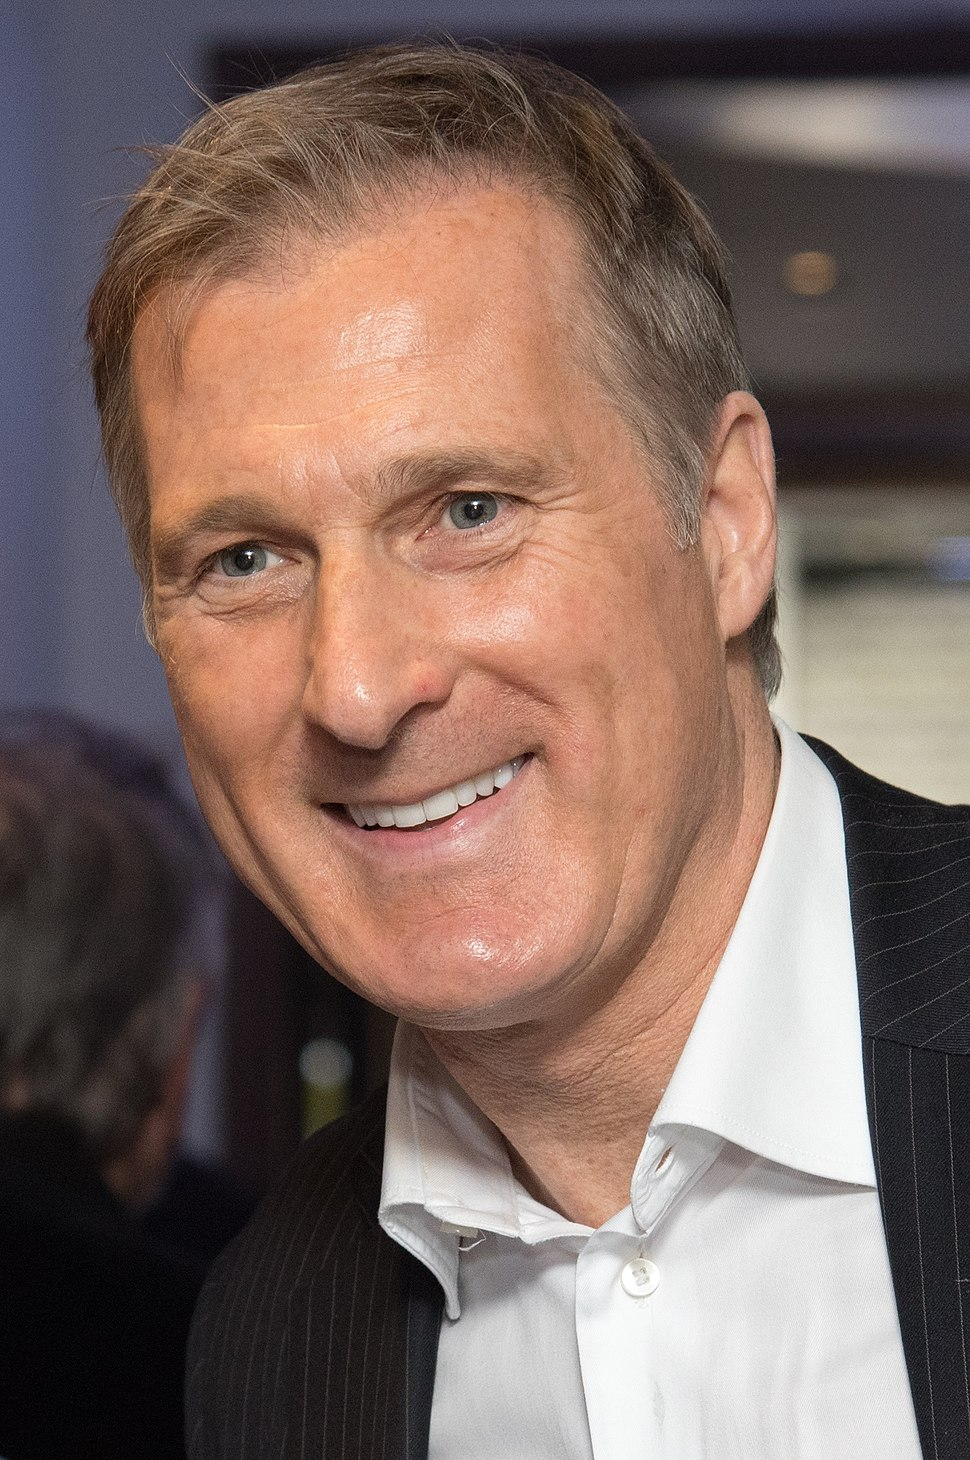 Maxime Bernier in 2017 - cropped